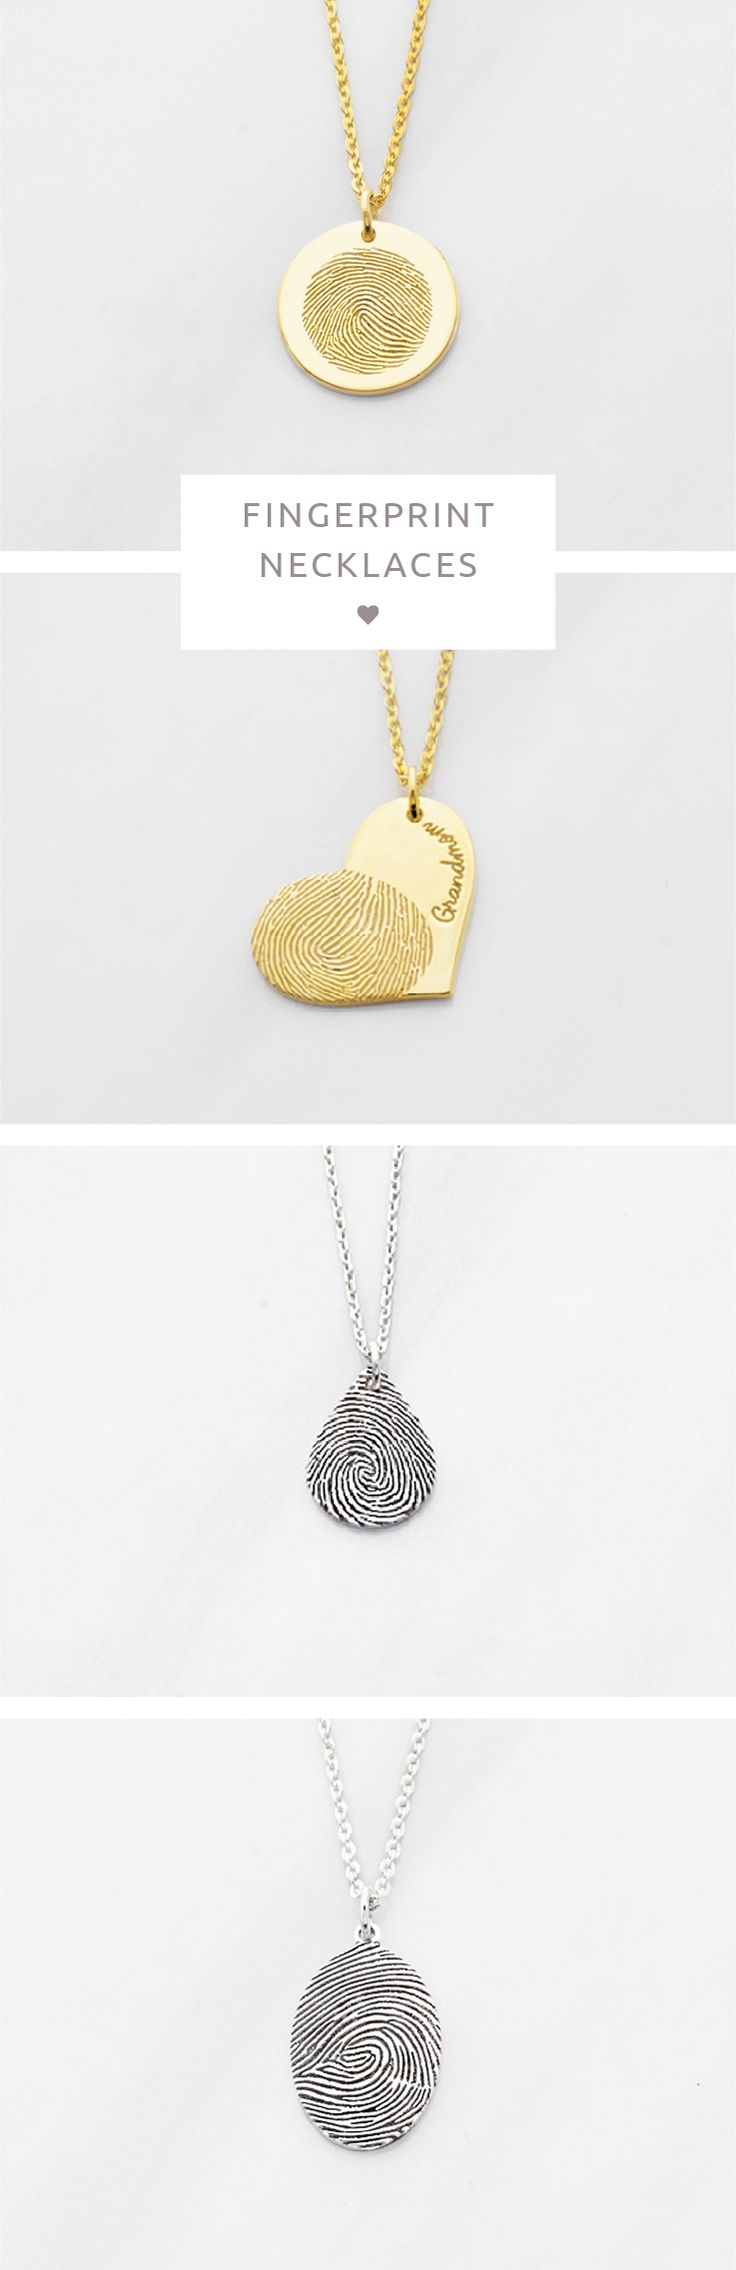 Disc Fingerprint Necklace • Heart Fingerprint Necklace • Heart Thumbprint Necklace • Fingerprint heart necklace • Tear drop fingerprint necklace • Oval Fingerprint Necklace • Custom fingerprint necklace • Thumbprint Necklace • Fingerprint pendant necklace • Memorial Necklace • In Memory Of Necklace • memorial gifts for loss of mother • grieving gifts • in memory gifts • gifts for sympathy • Bereavement Gift • Funeral Memorial Gift